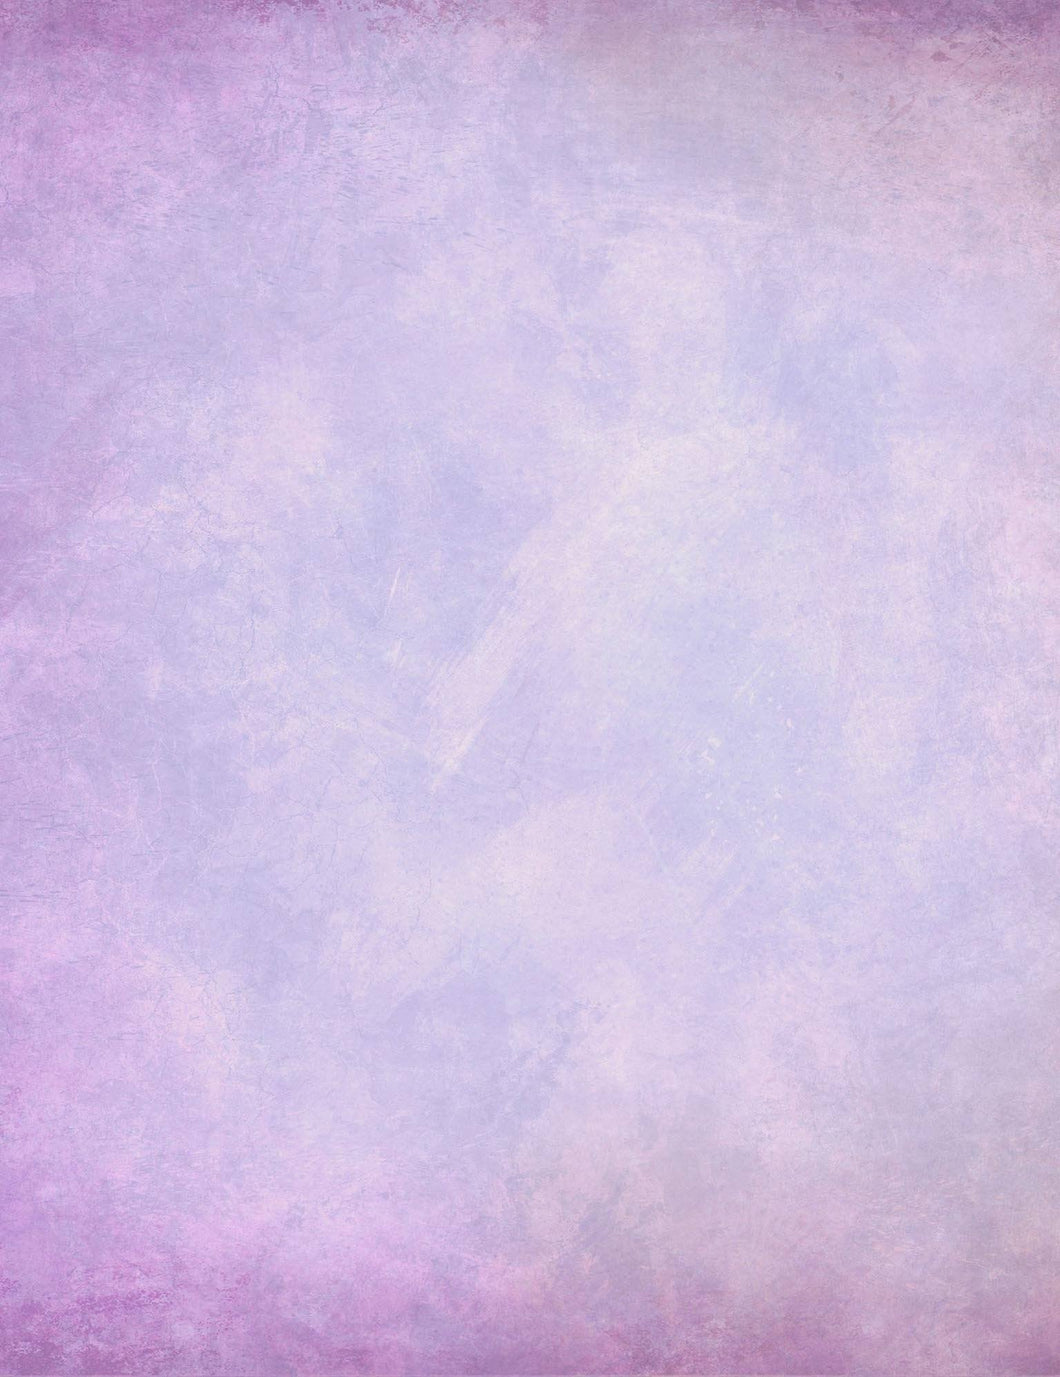 Printed Old Master Lighter Pink Purple In Center Texture Photography Backdrop